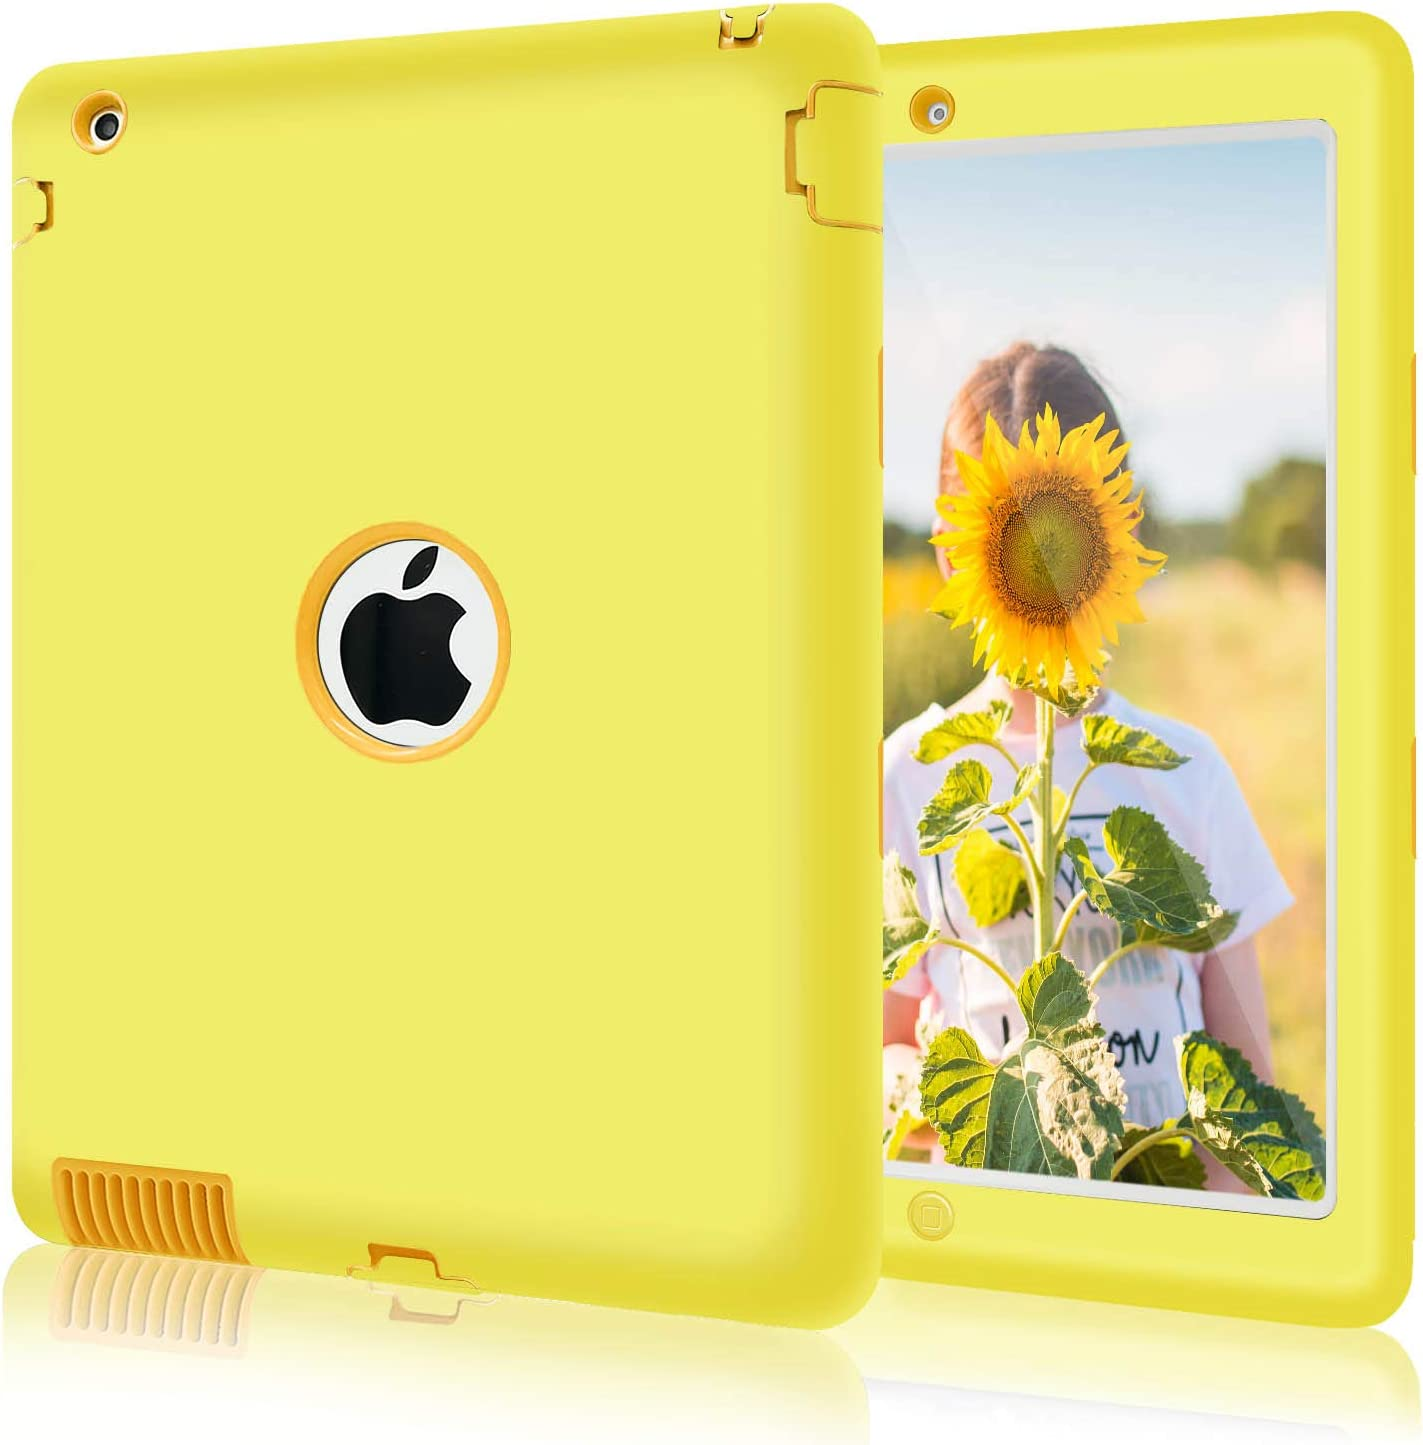 iPad 2 Case, iPad 4 Case, iPad 3 Case, Fingic Heavy Duty Rugged Shockproof Rugged High Impact Case Hybrid Three Layer Armor Full Body Protective Cases Cover for iPad 2nd /3rd / 4th Generation - Yellow